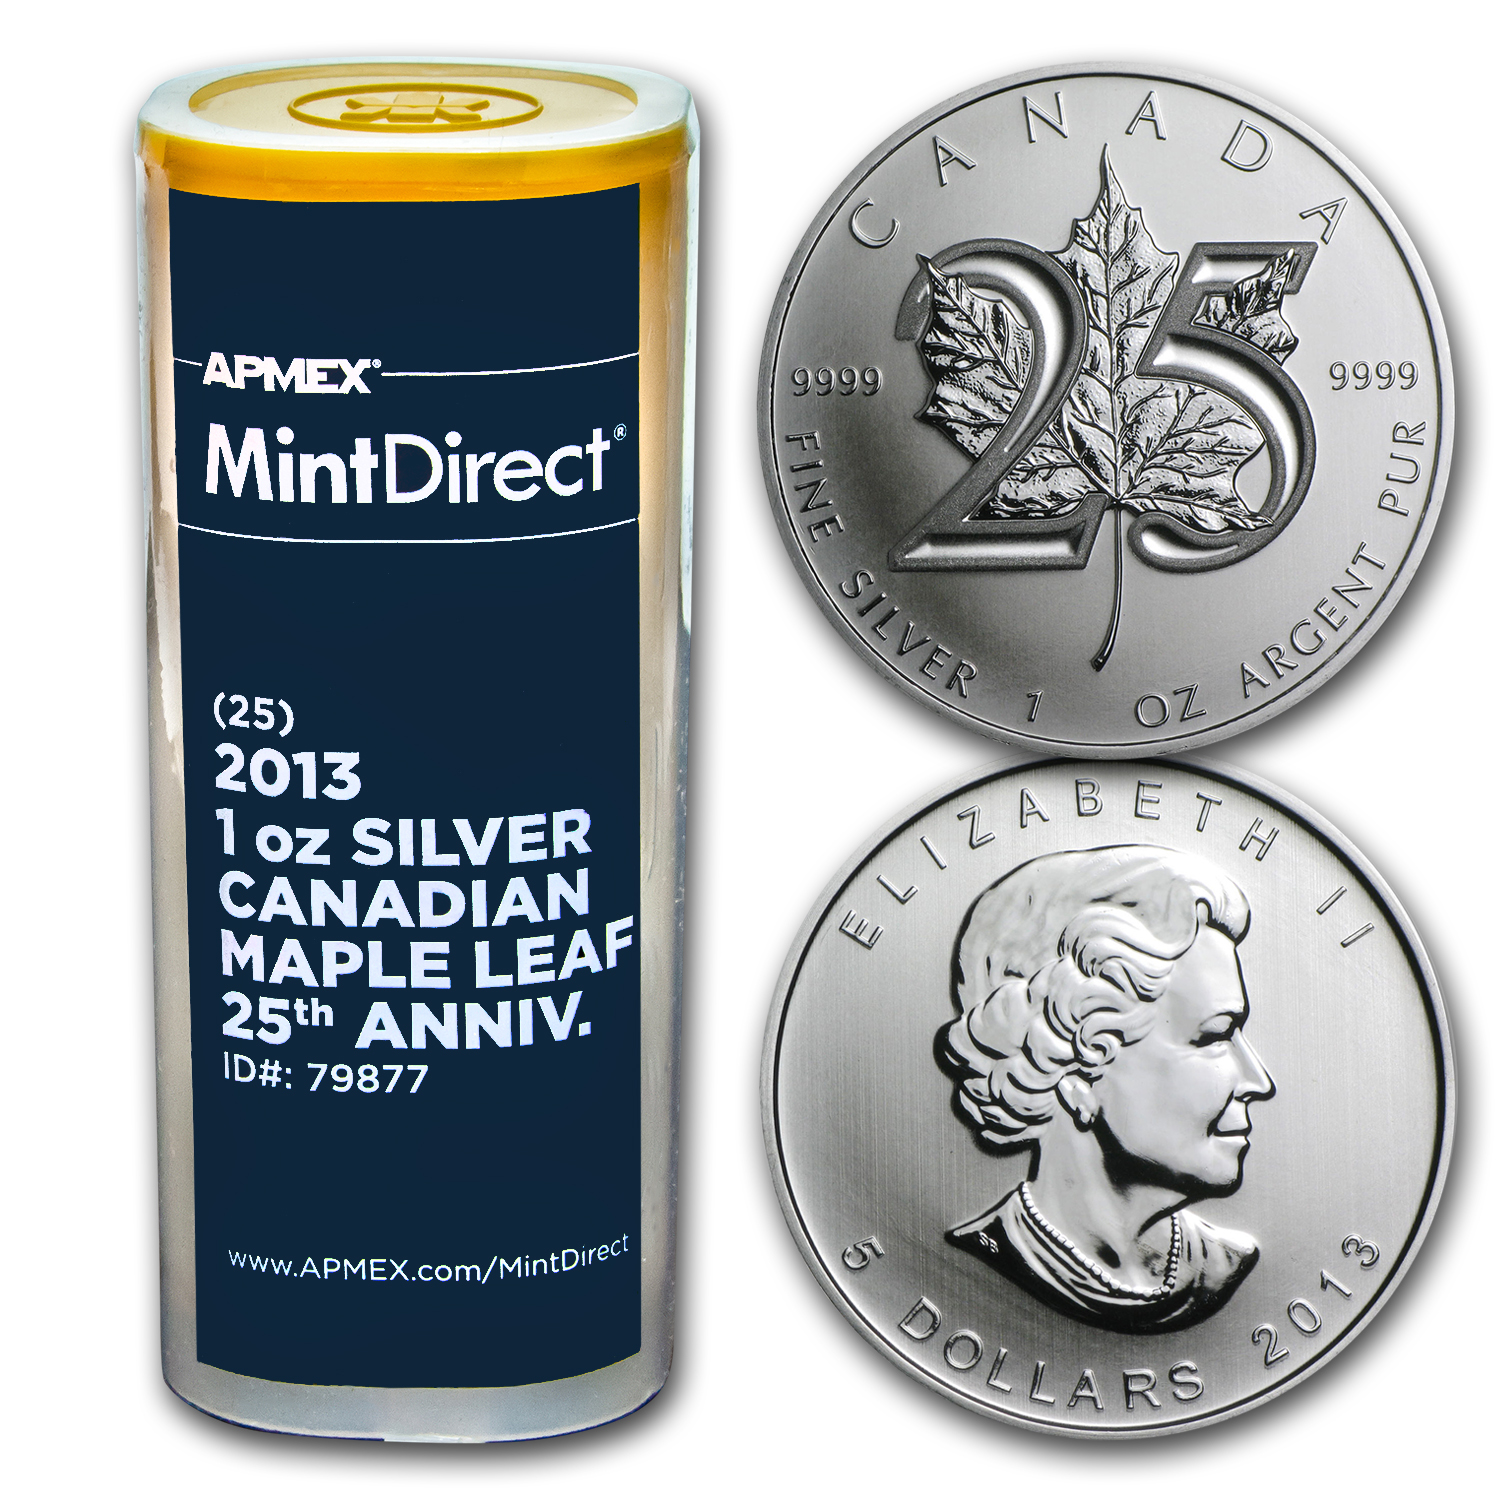 2013 1 oz Silver Maple Leaf 25th Anniv (25-Coin MintDirect® Tube)